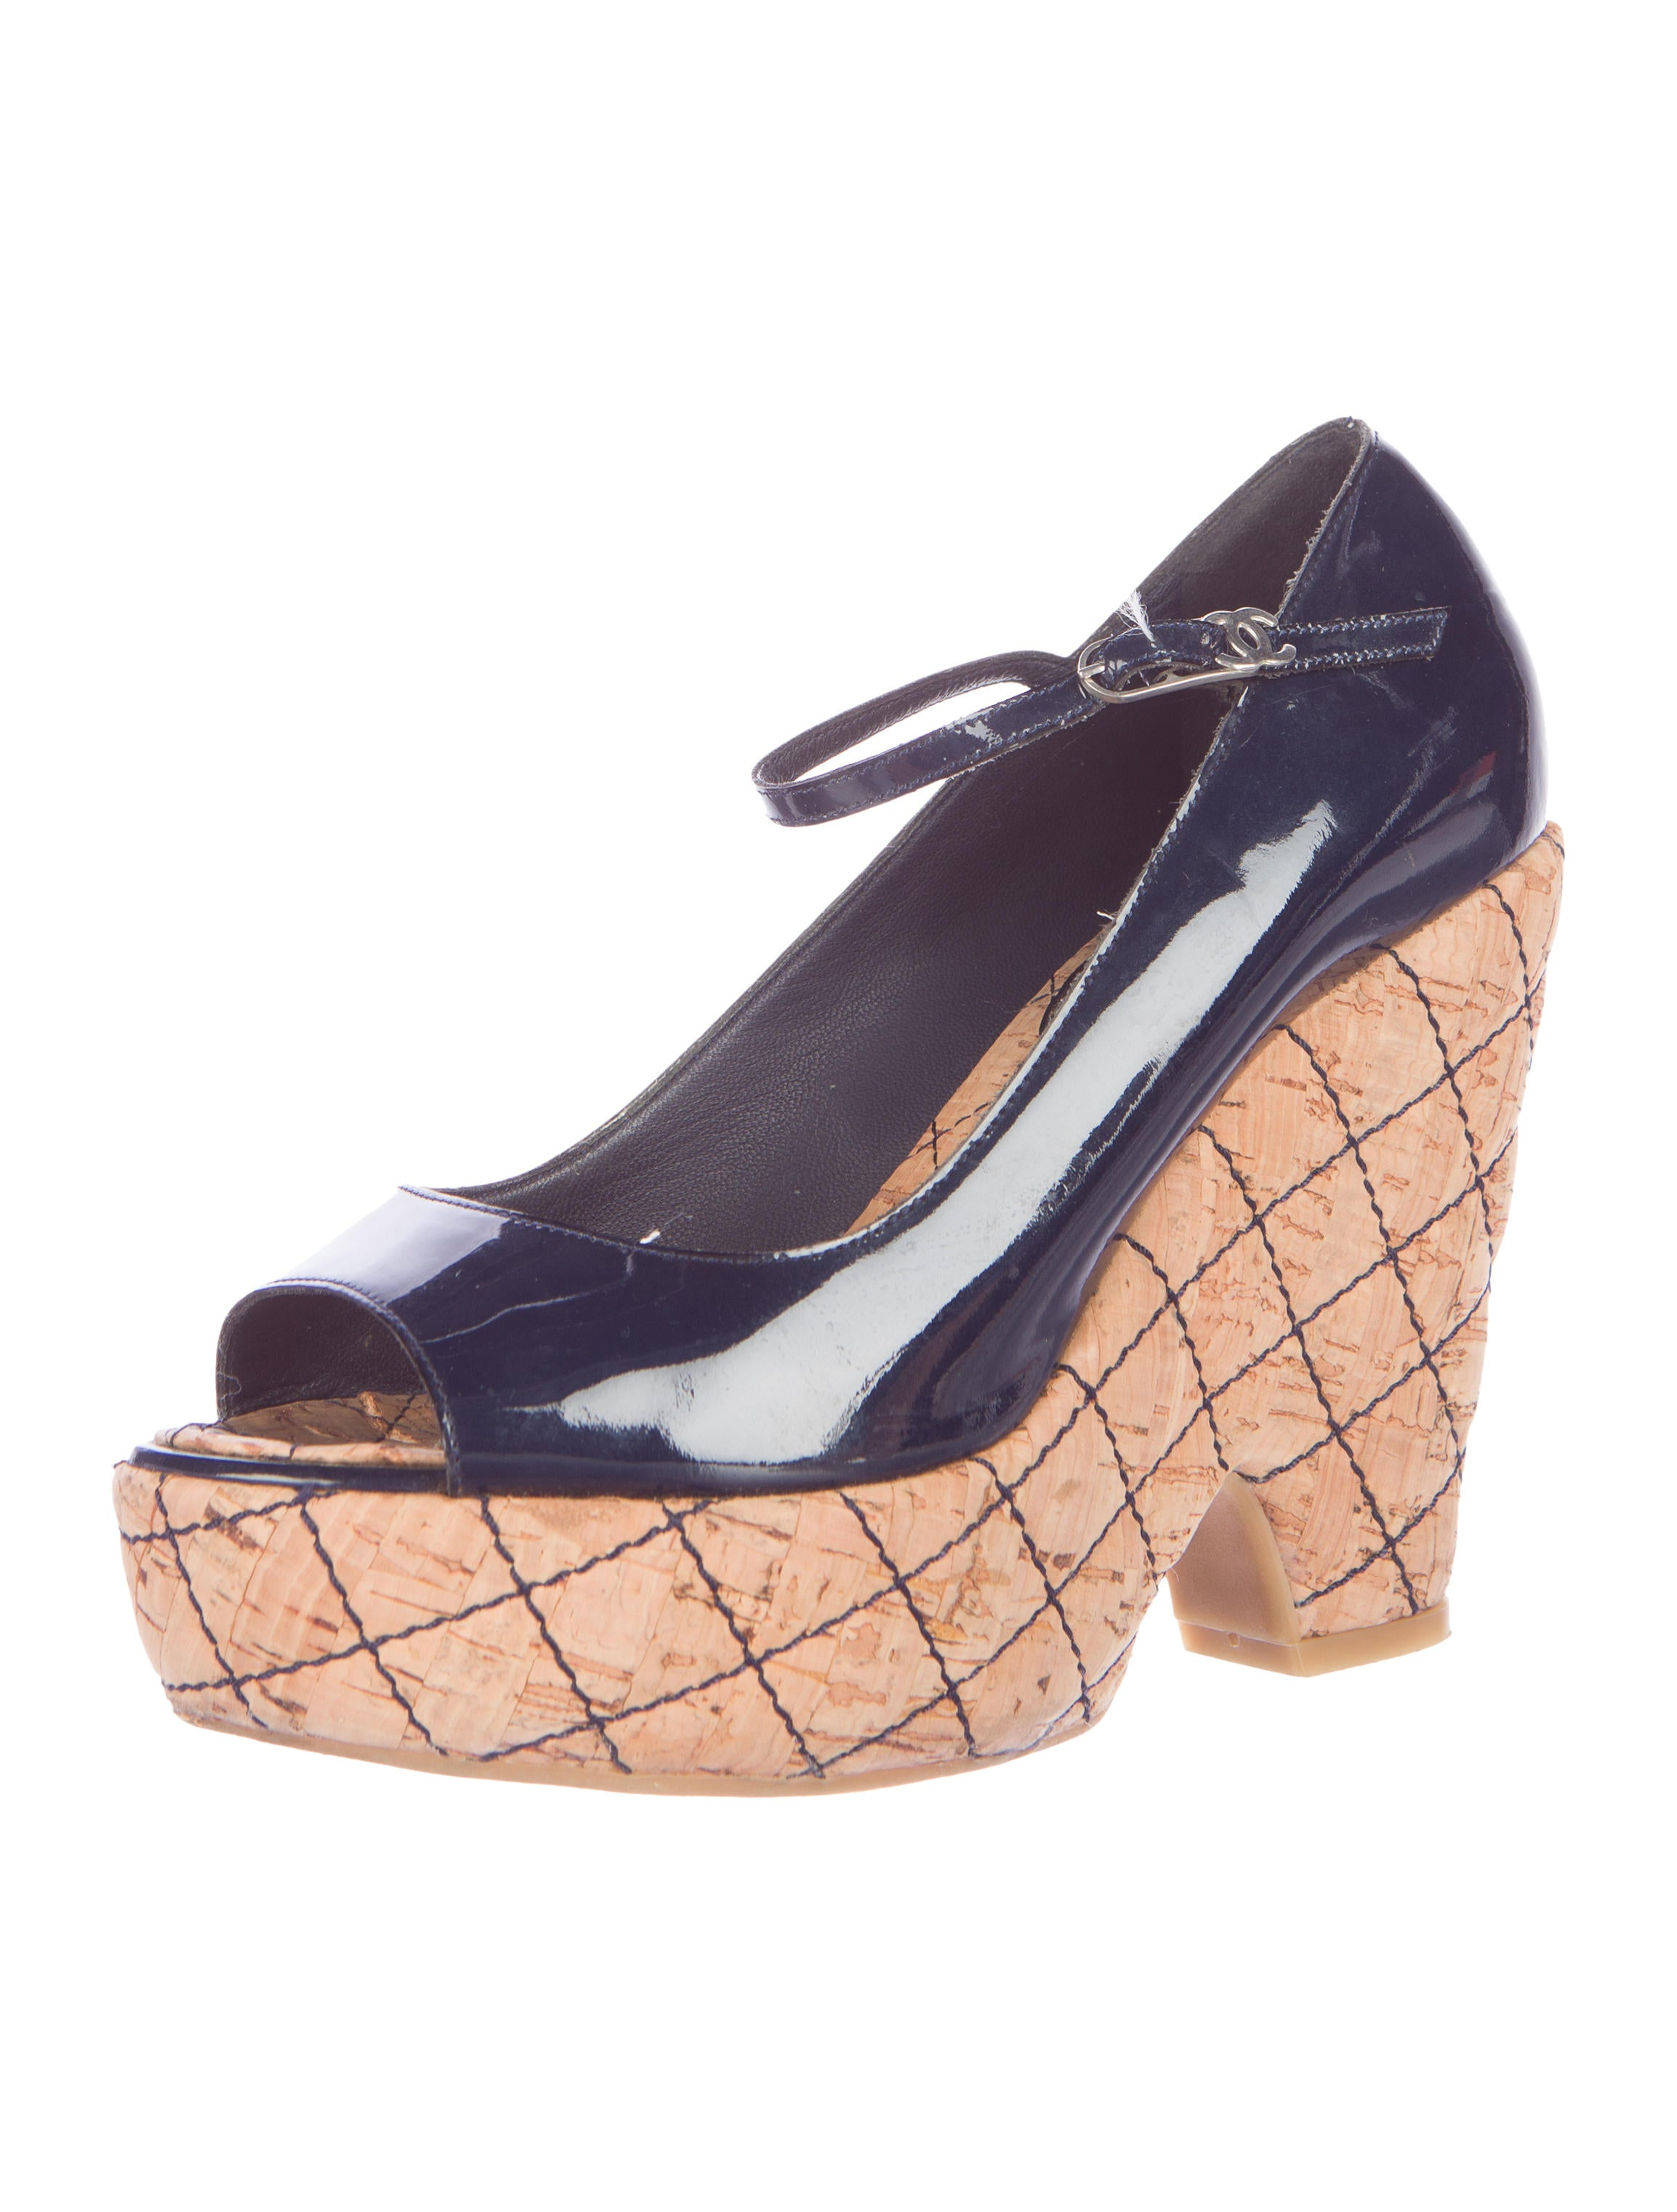 chanel quilted peep toe wedges shoes cha125019 the